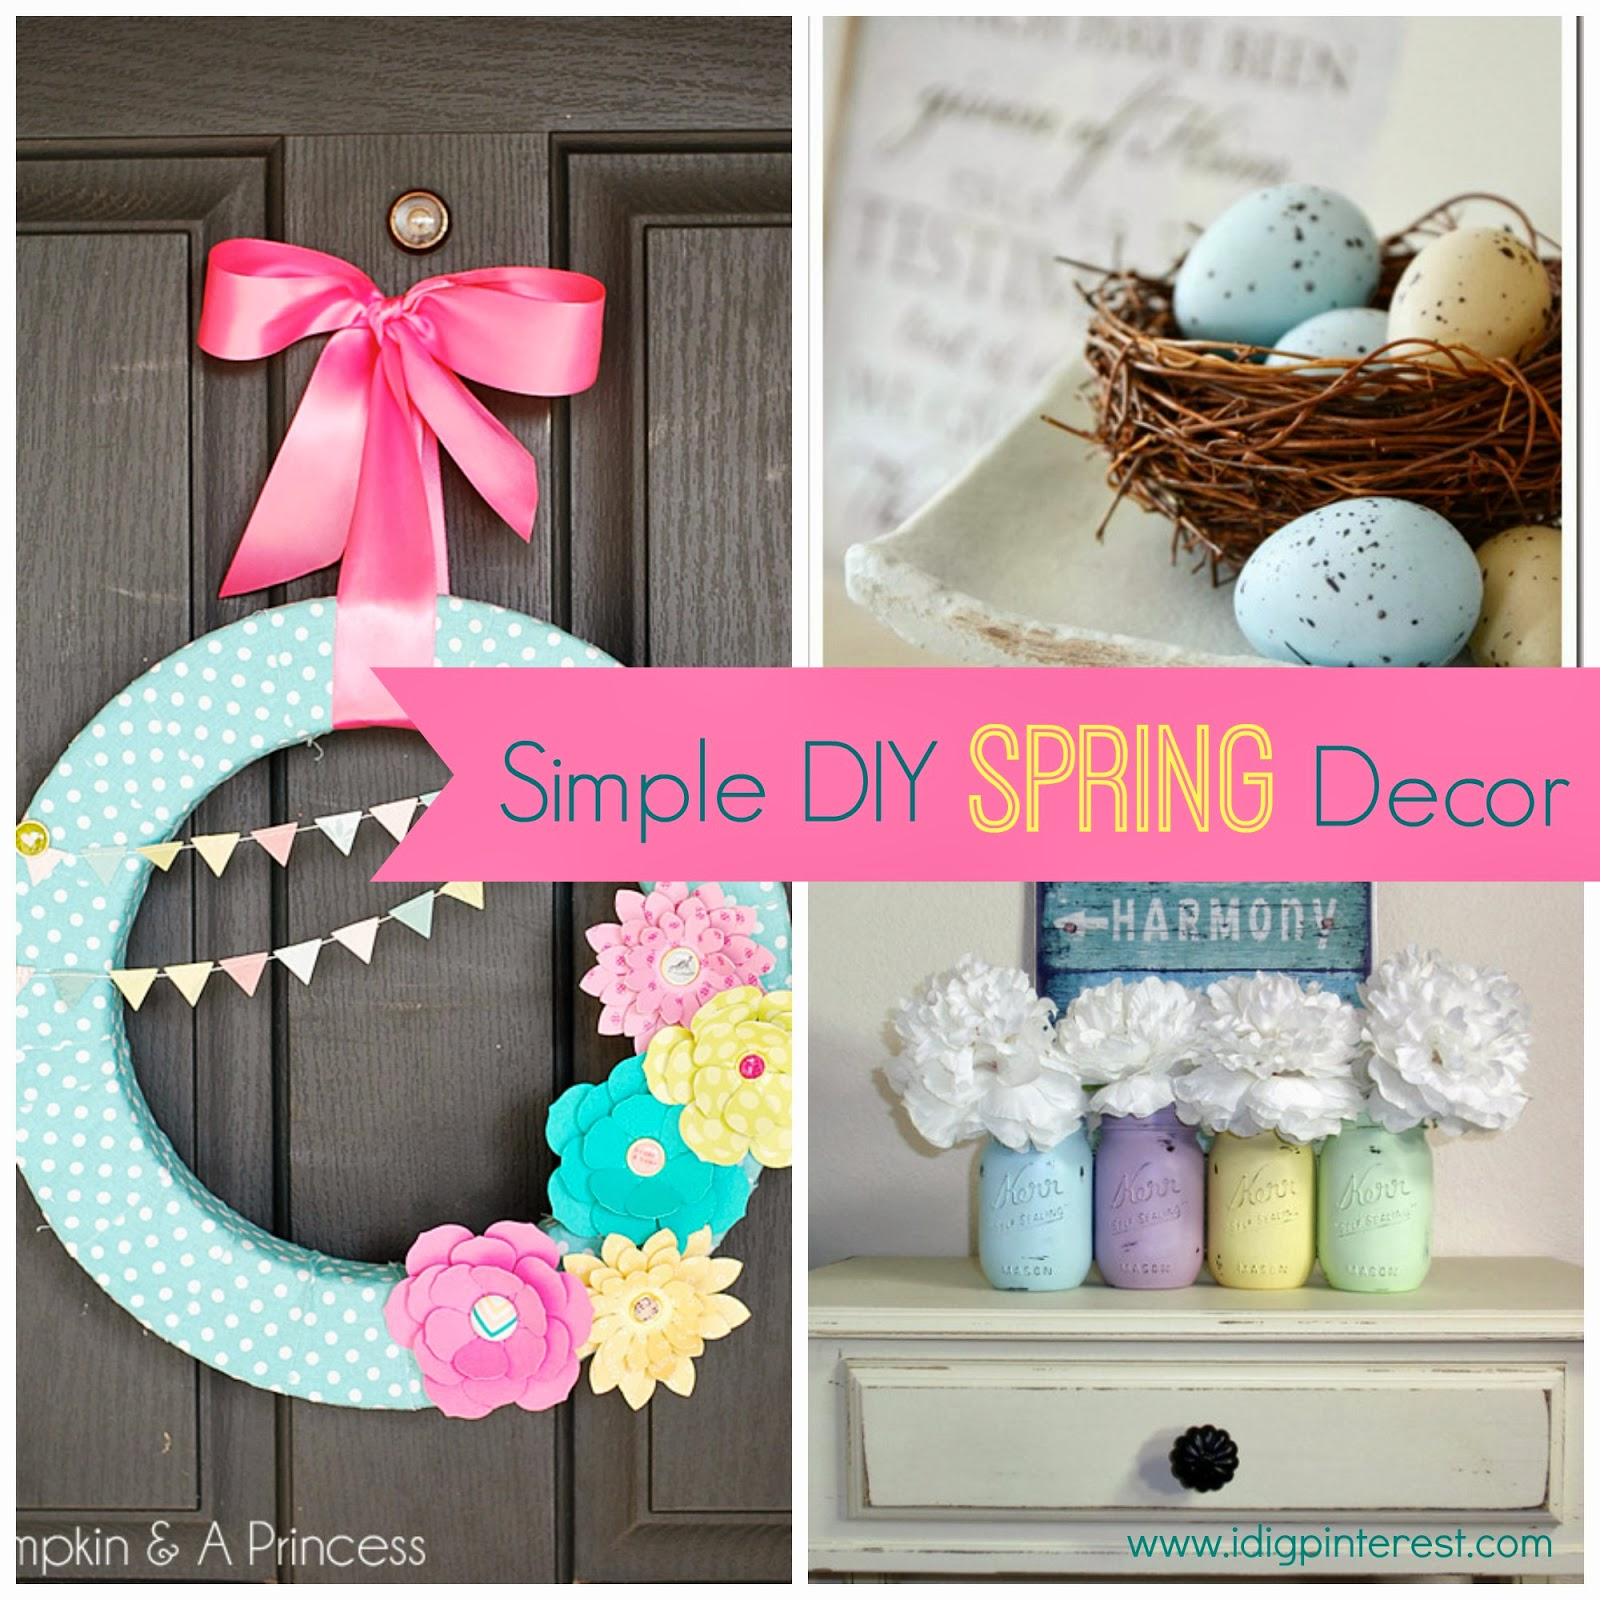 Simple diy spring decor ideas i dig pinterest for Home design ideas handmade